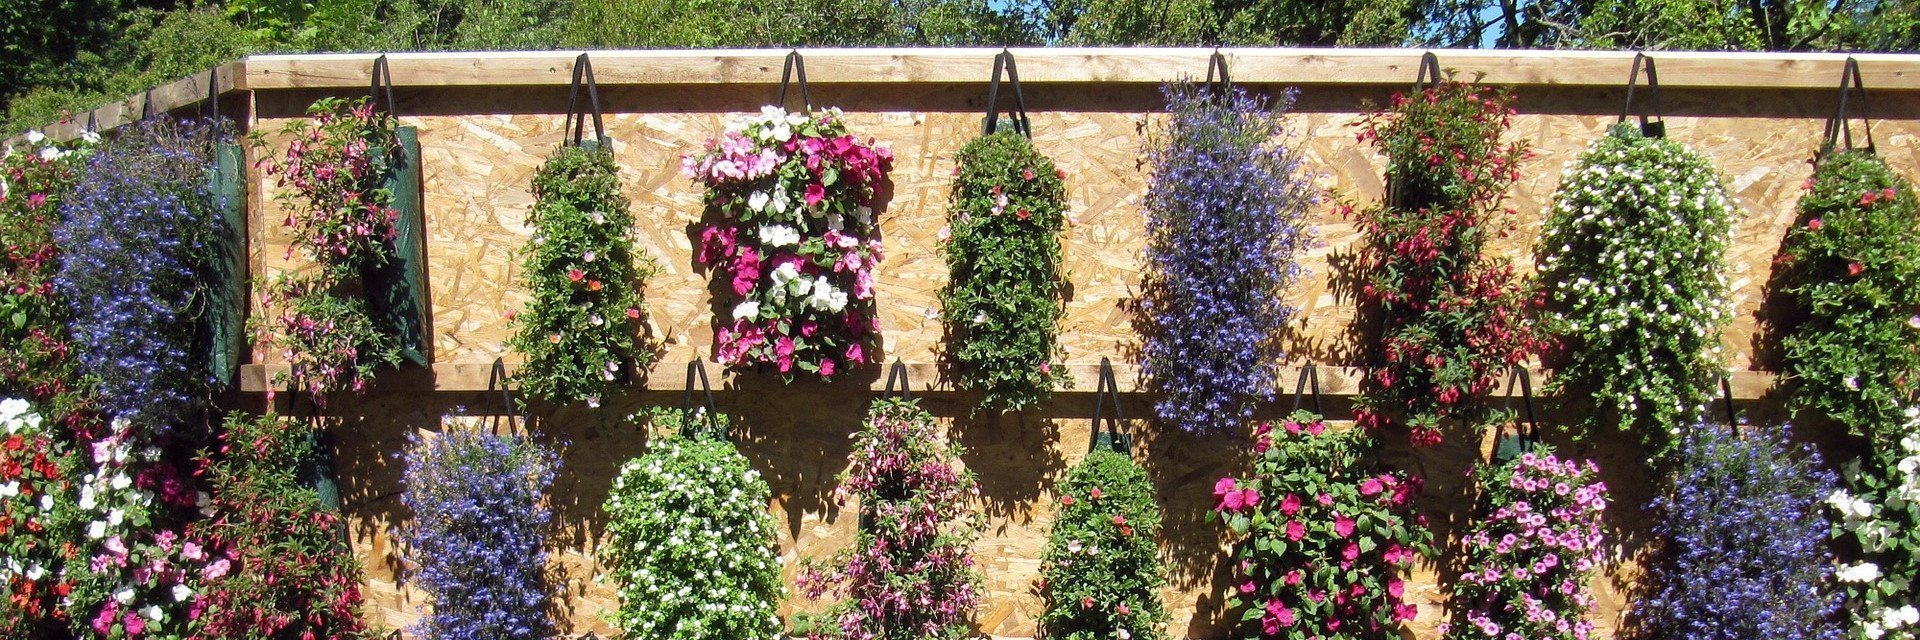 2019 Gardening events in Oxfordshire and beyond